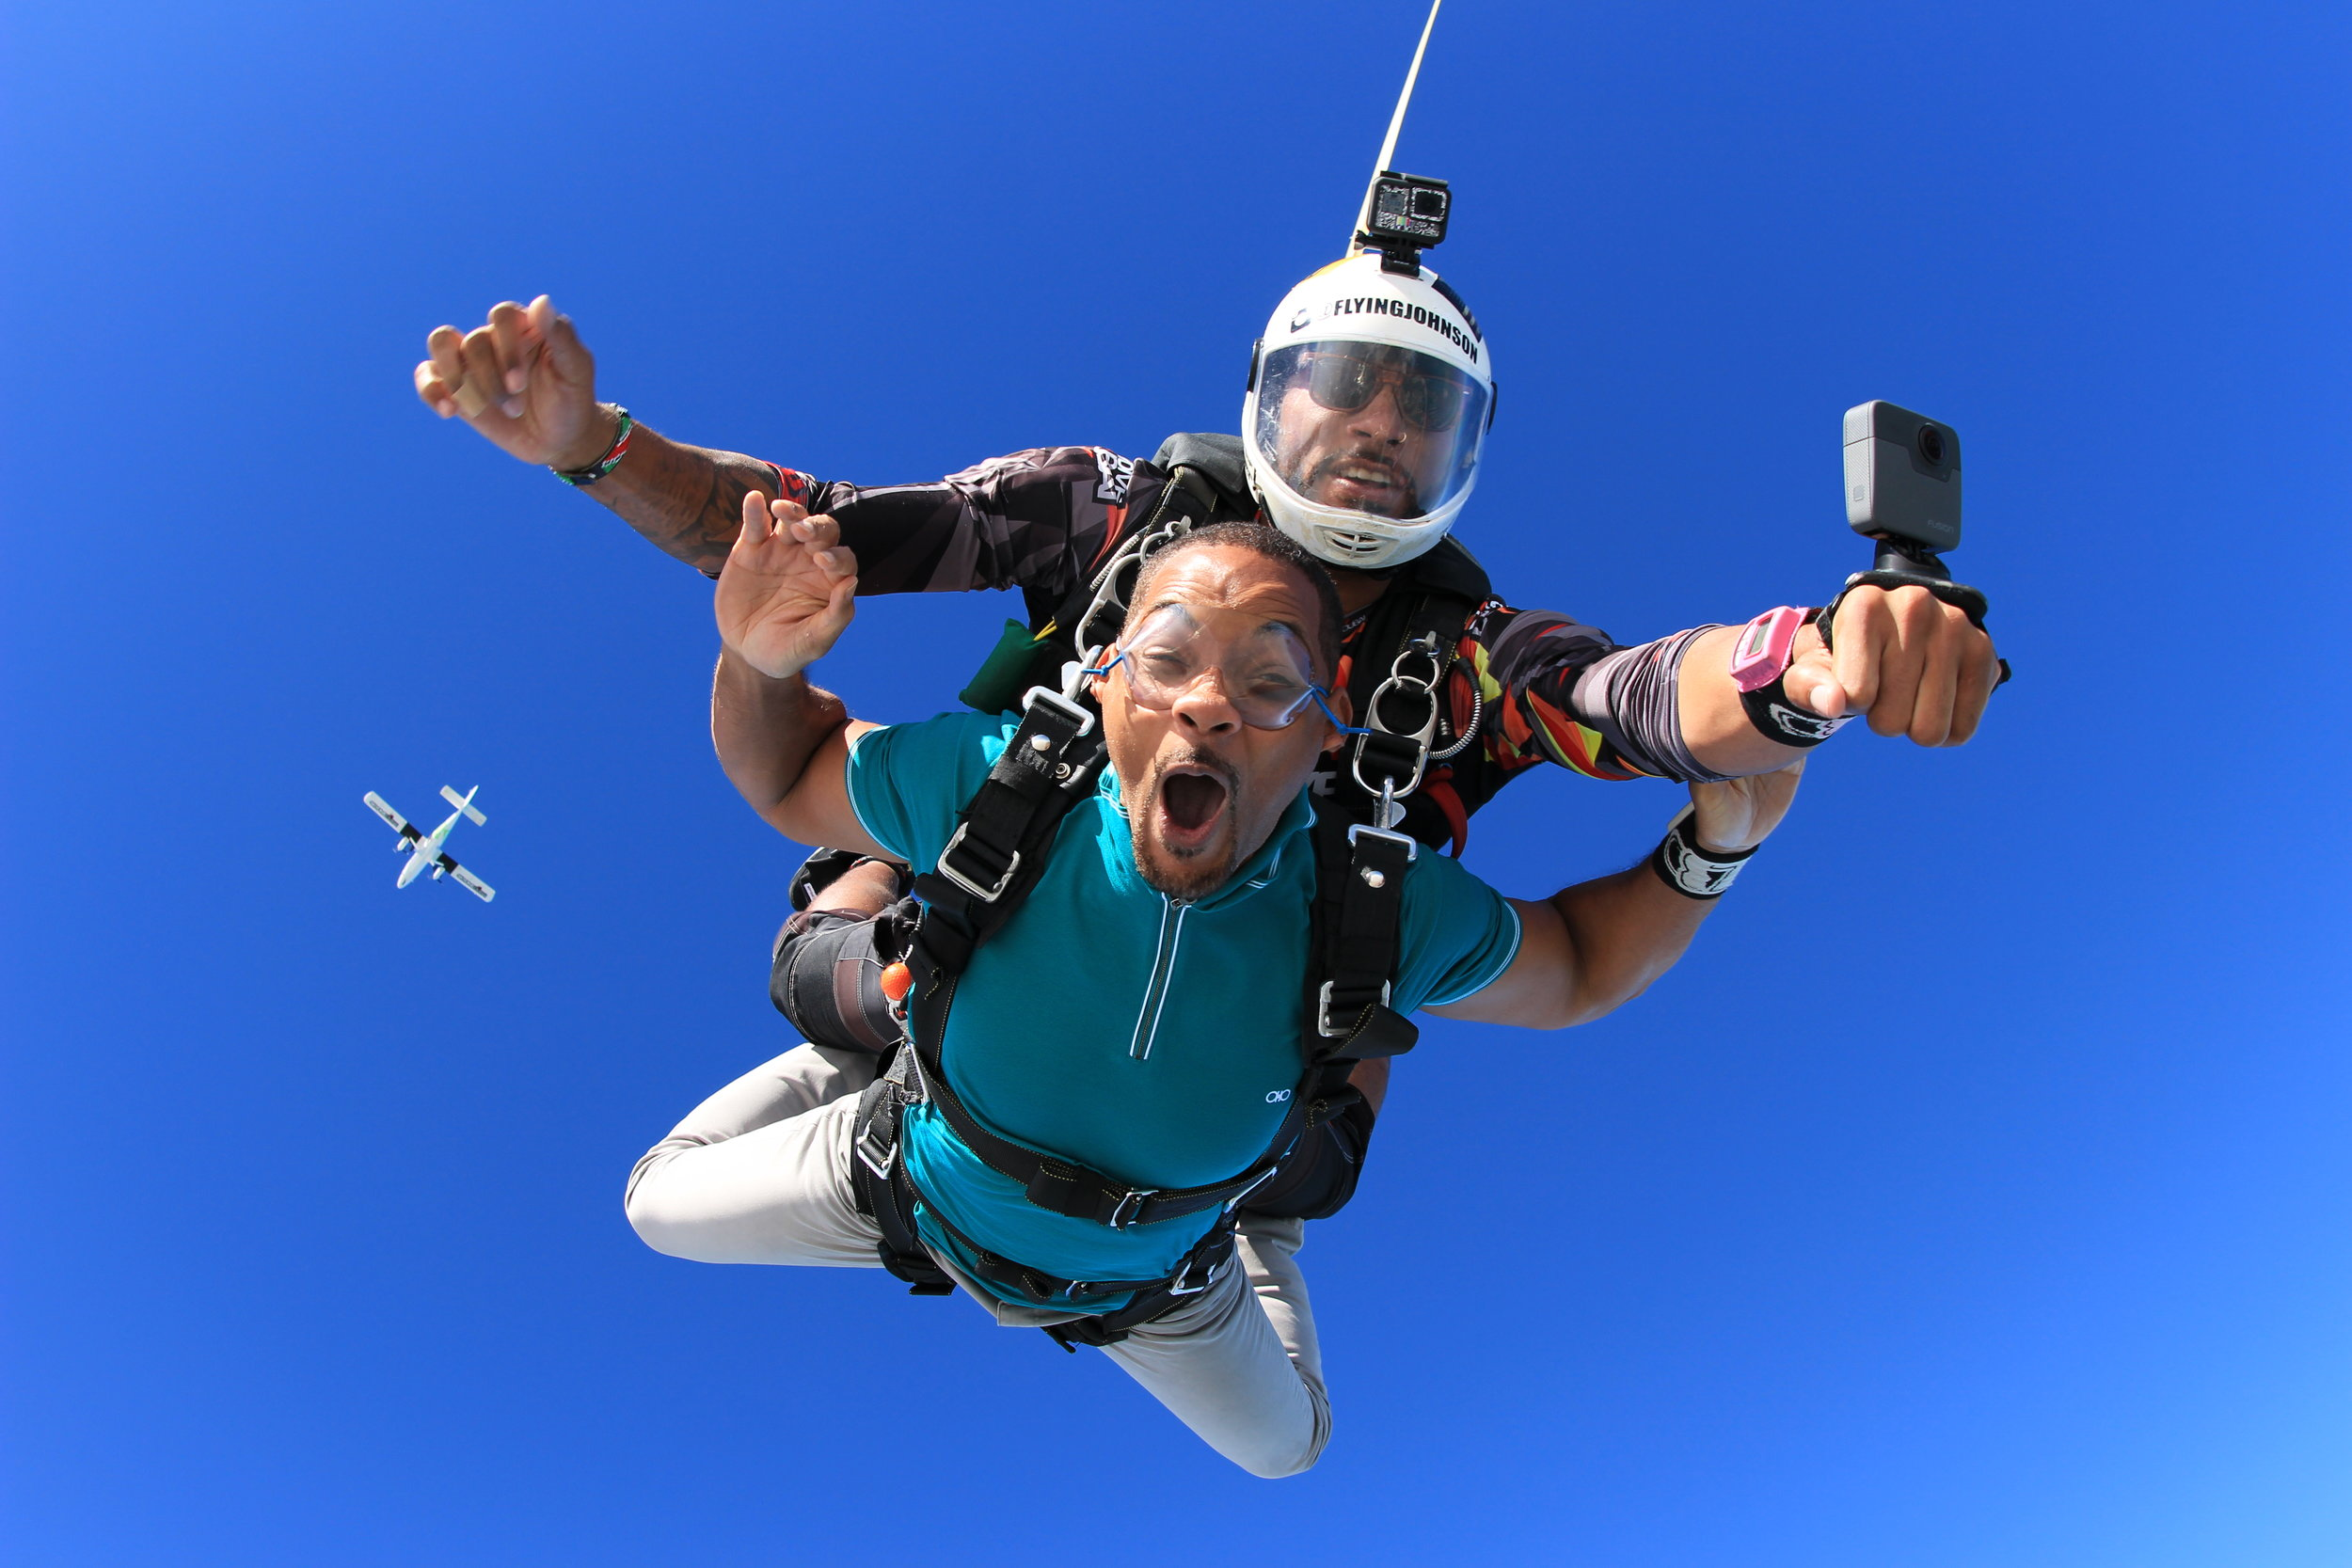 Tandem instructor  Brandon Johnson  takes actor Will Smith on a skydive in Dubai.  Photo courtesy of Rodney Crossman